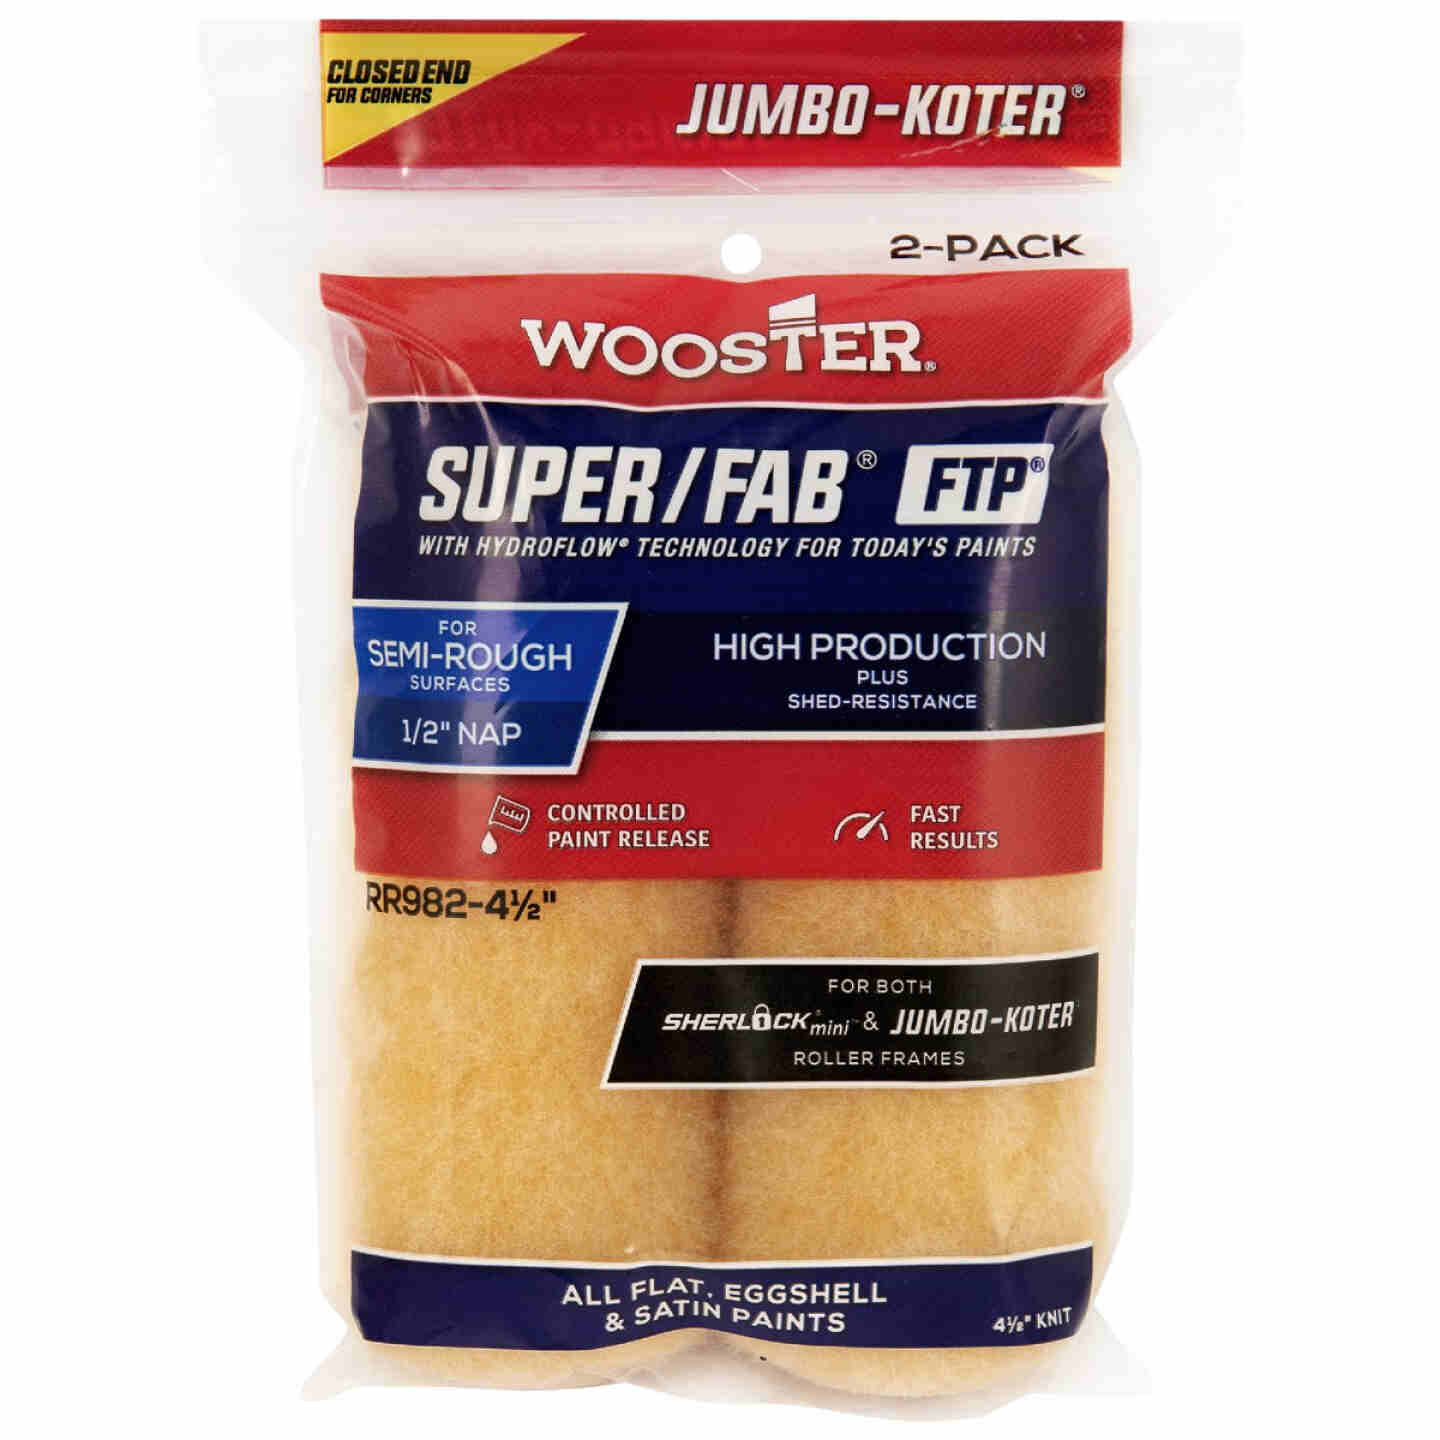 Jumbo-Koter S/F FTP 4-1/2 In. x 1/2 In. Knit Roller Cover (2-Pack) Image 1